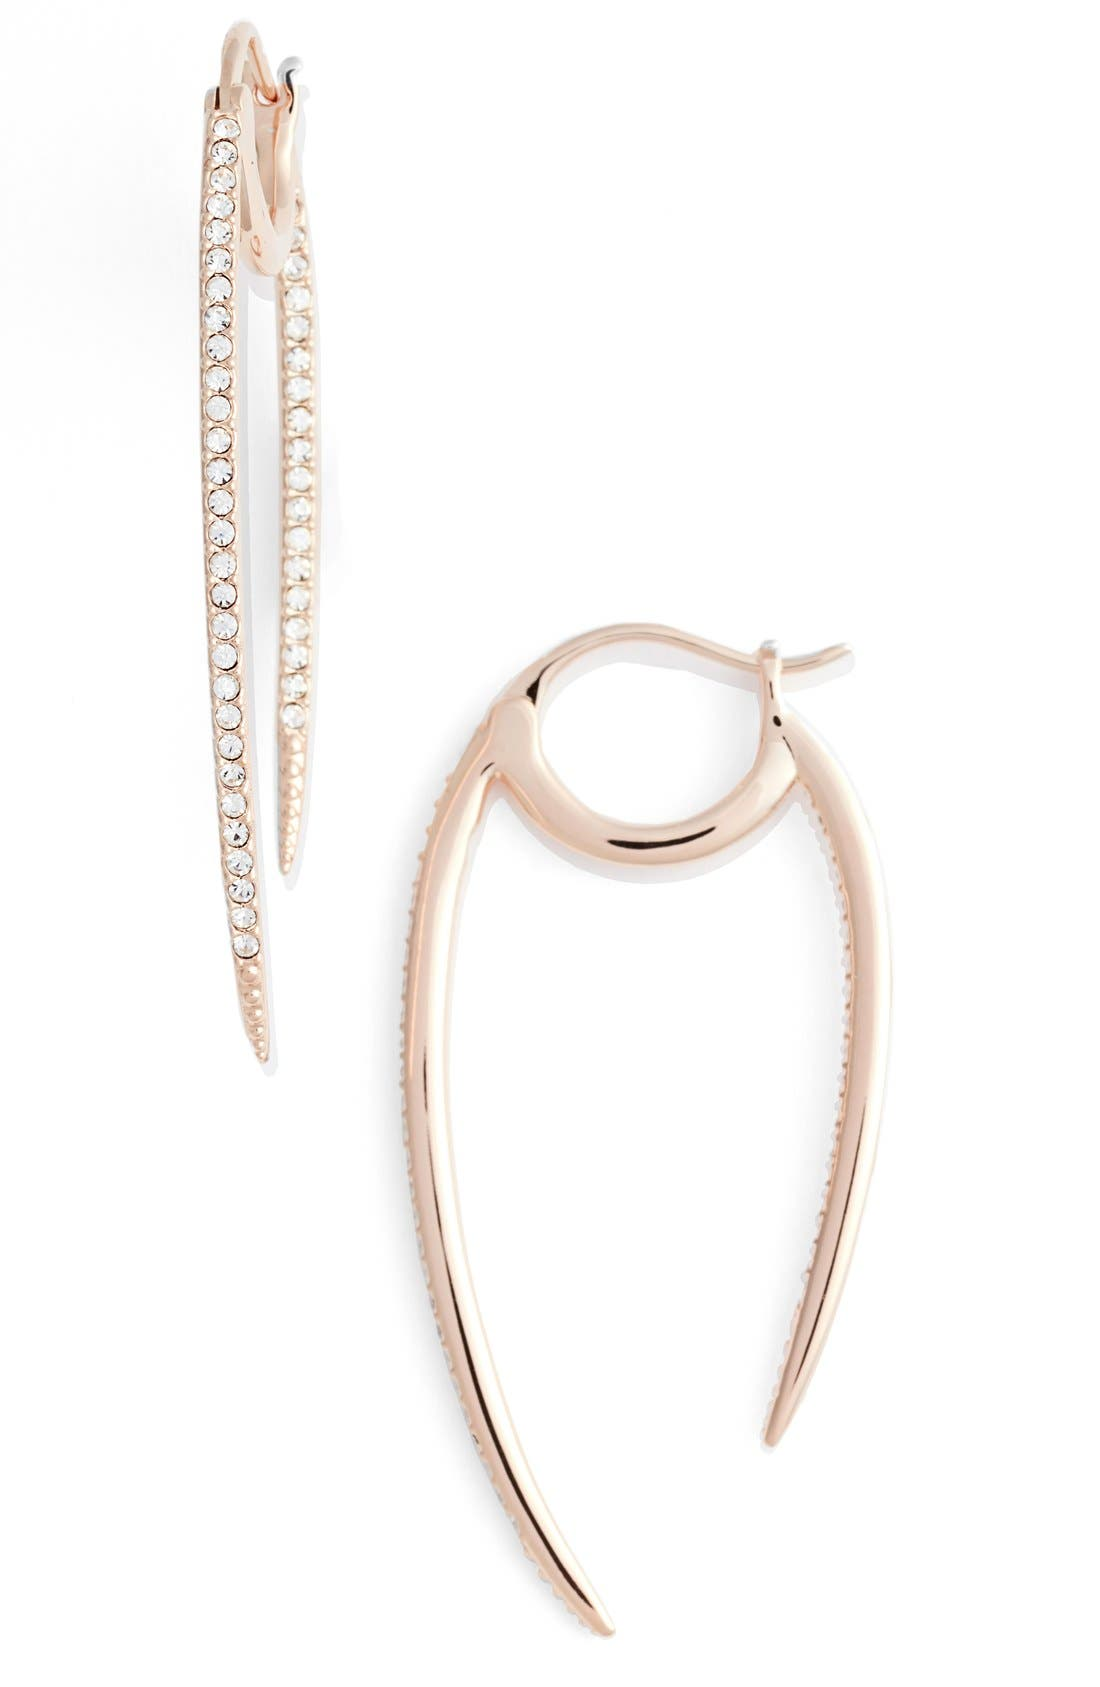 Nadri 'Crescent' Linear Hoop Earrings